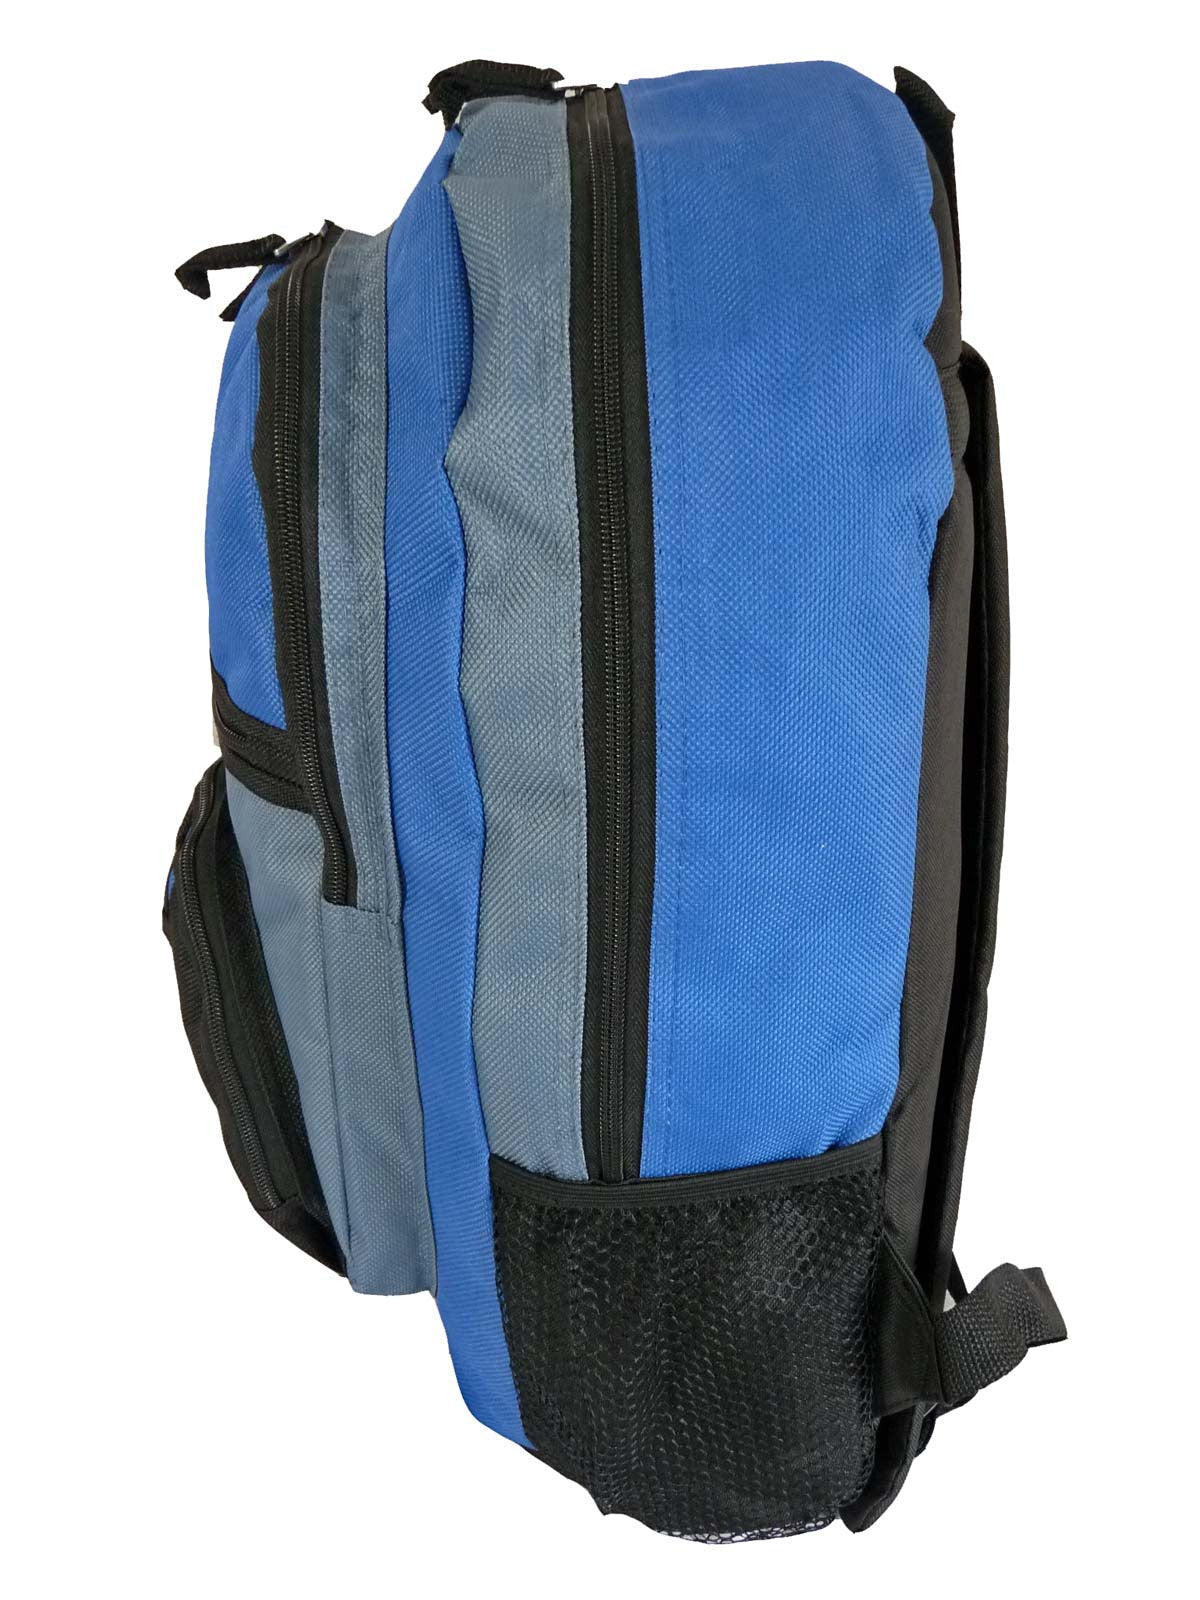 Kids School Bags RL37M Light Blue S Side View